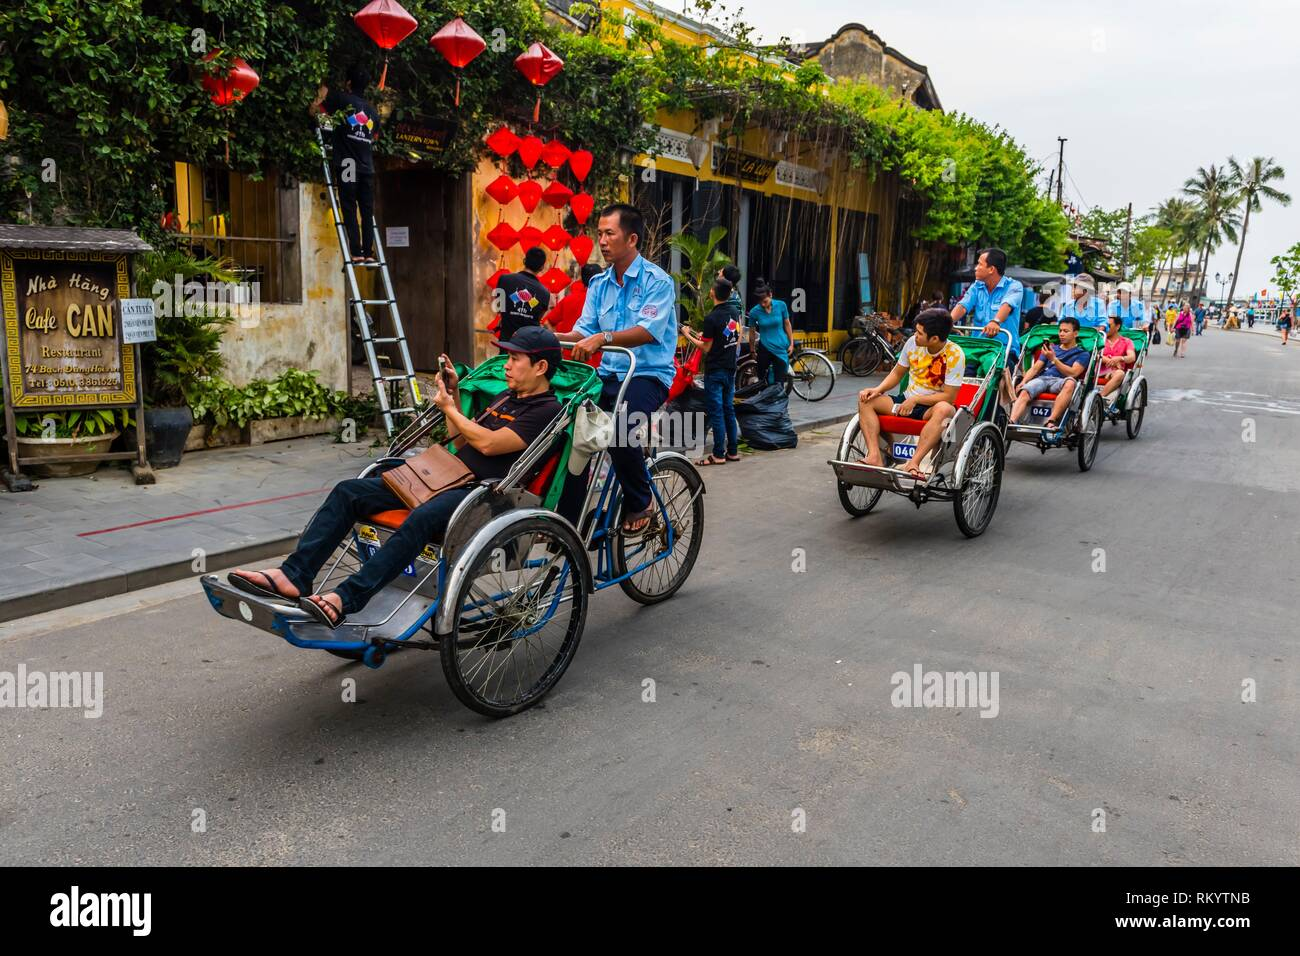 Tourists peddled through the Old Town on Cyclos (three wheeled bicycle taxis), Hoi An, Vietnam. - Stock Image